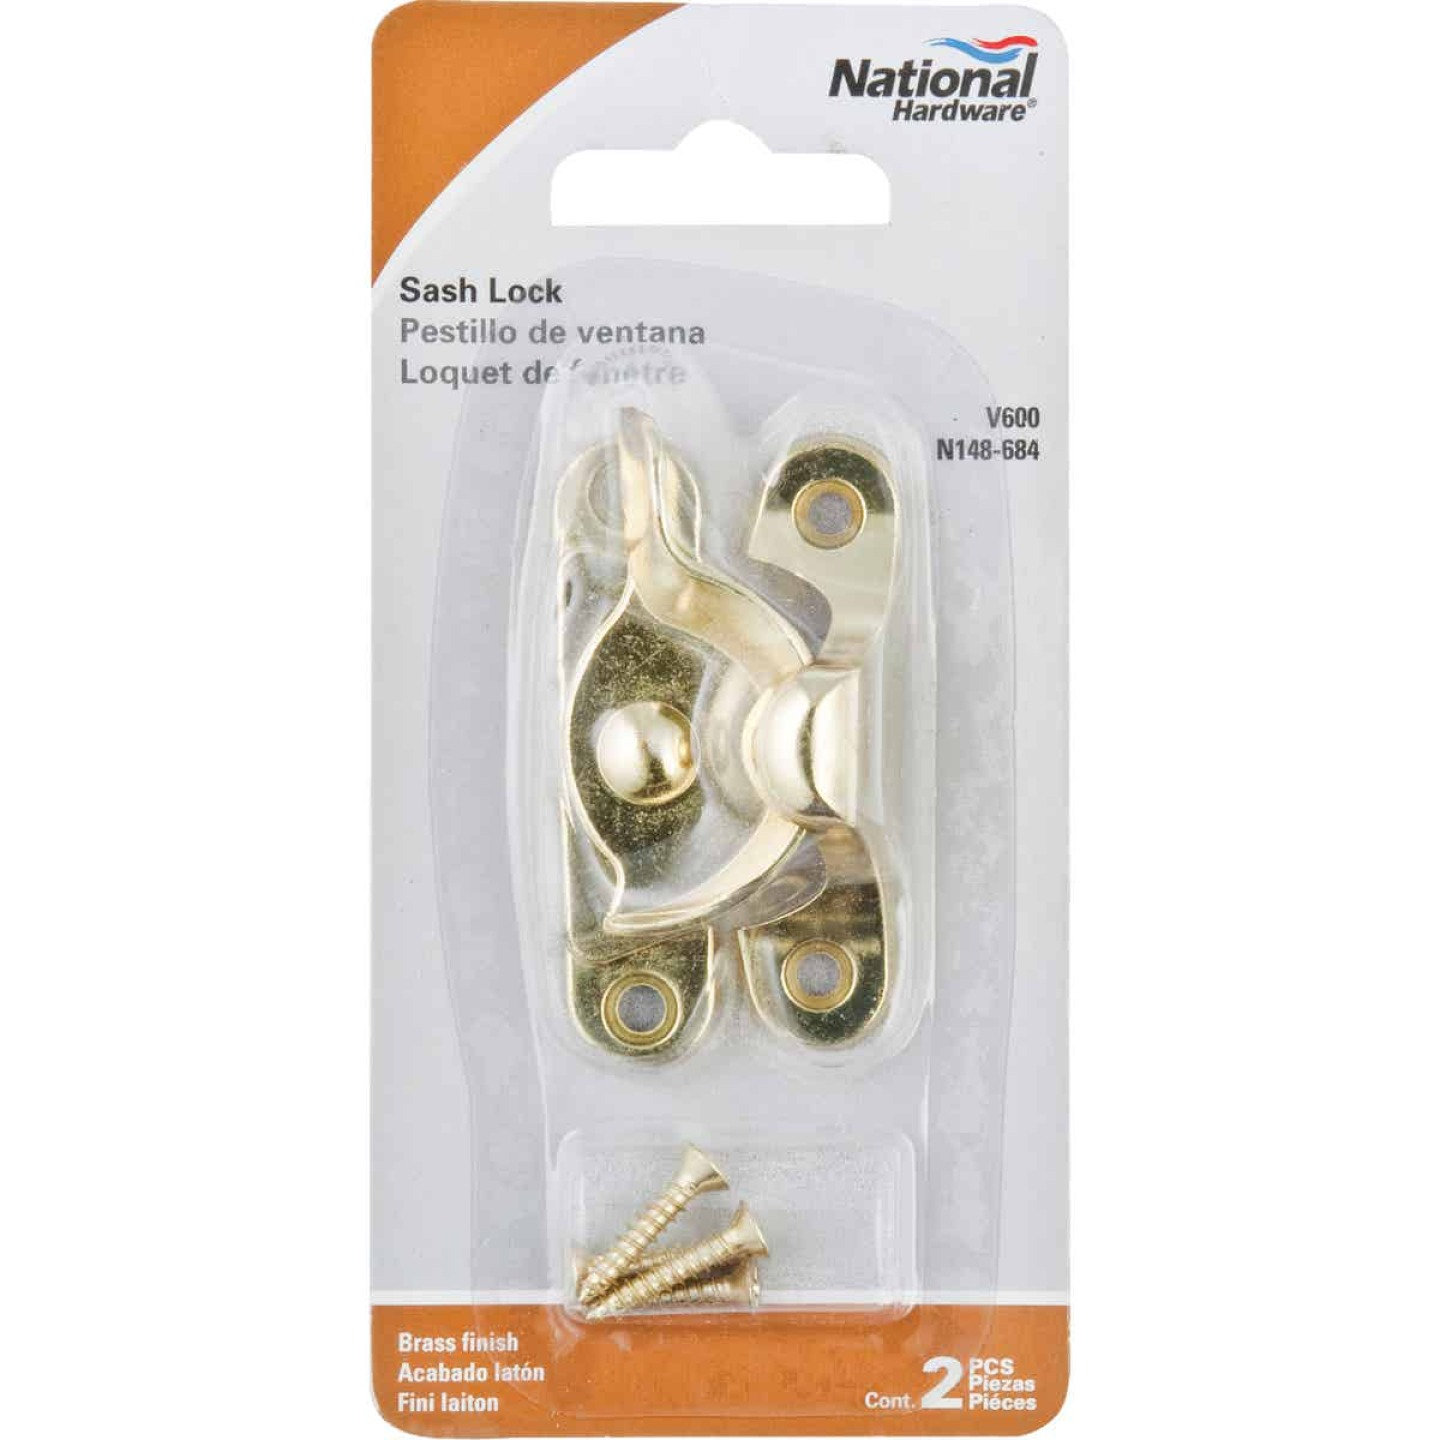 National Brass 7/8 In. Crescent Sash Lock Image 2